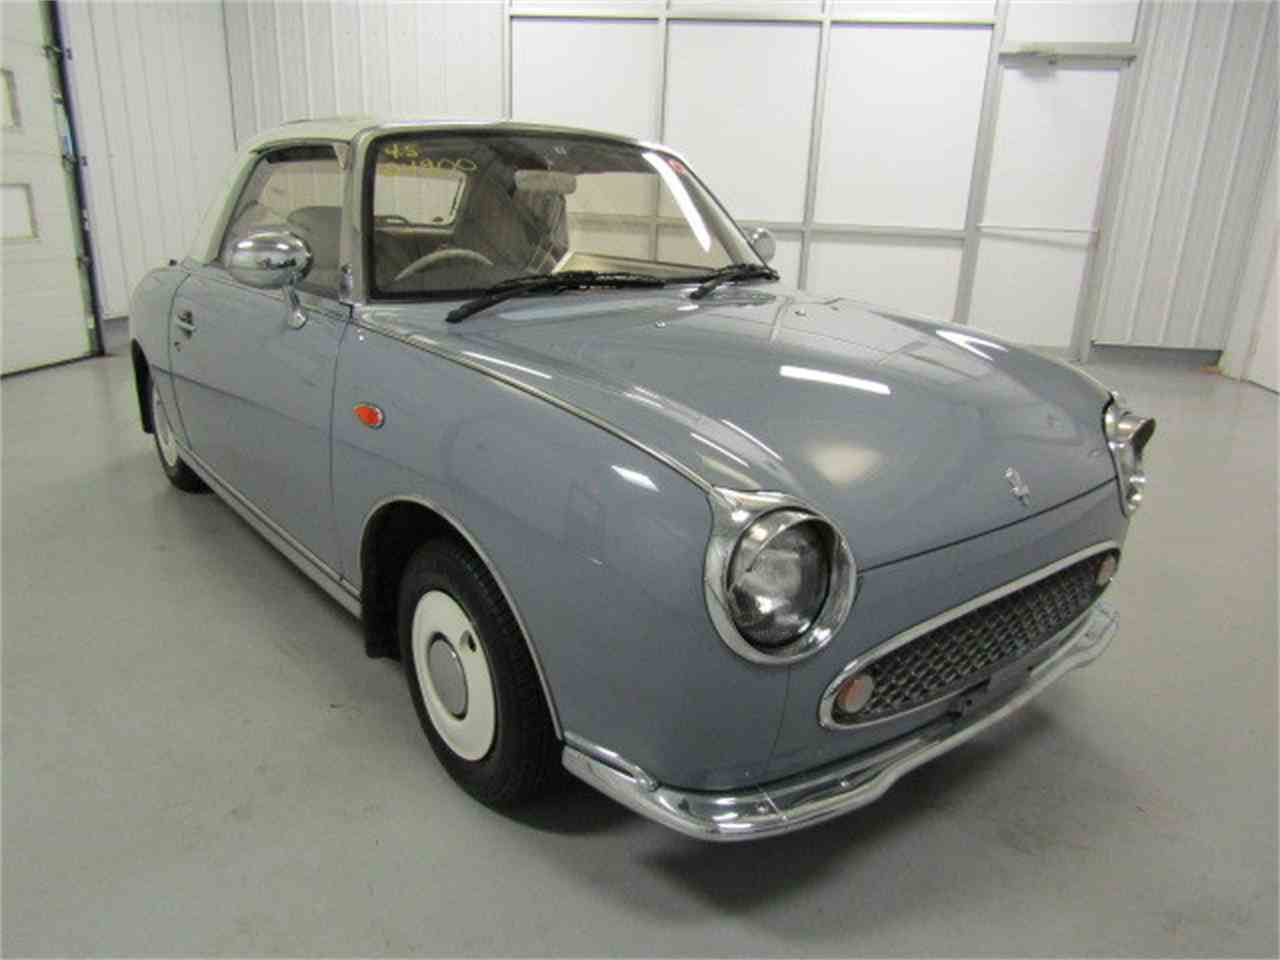 1991 Nissan Figaro for Sale - CC-1003203